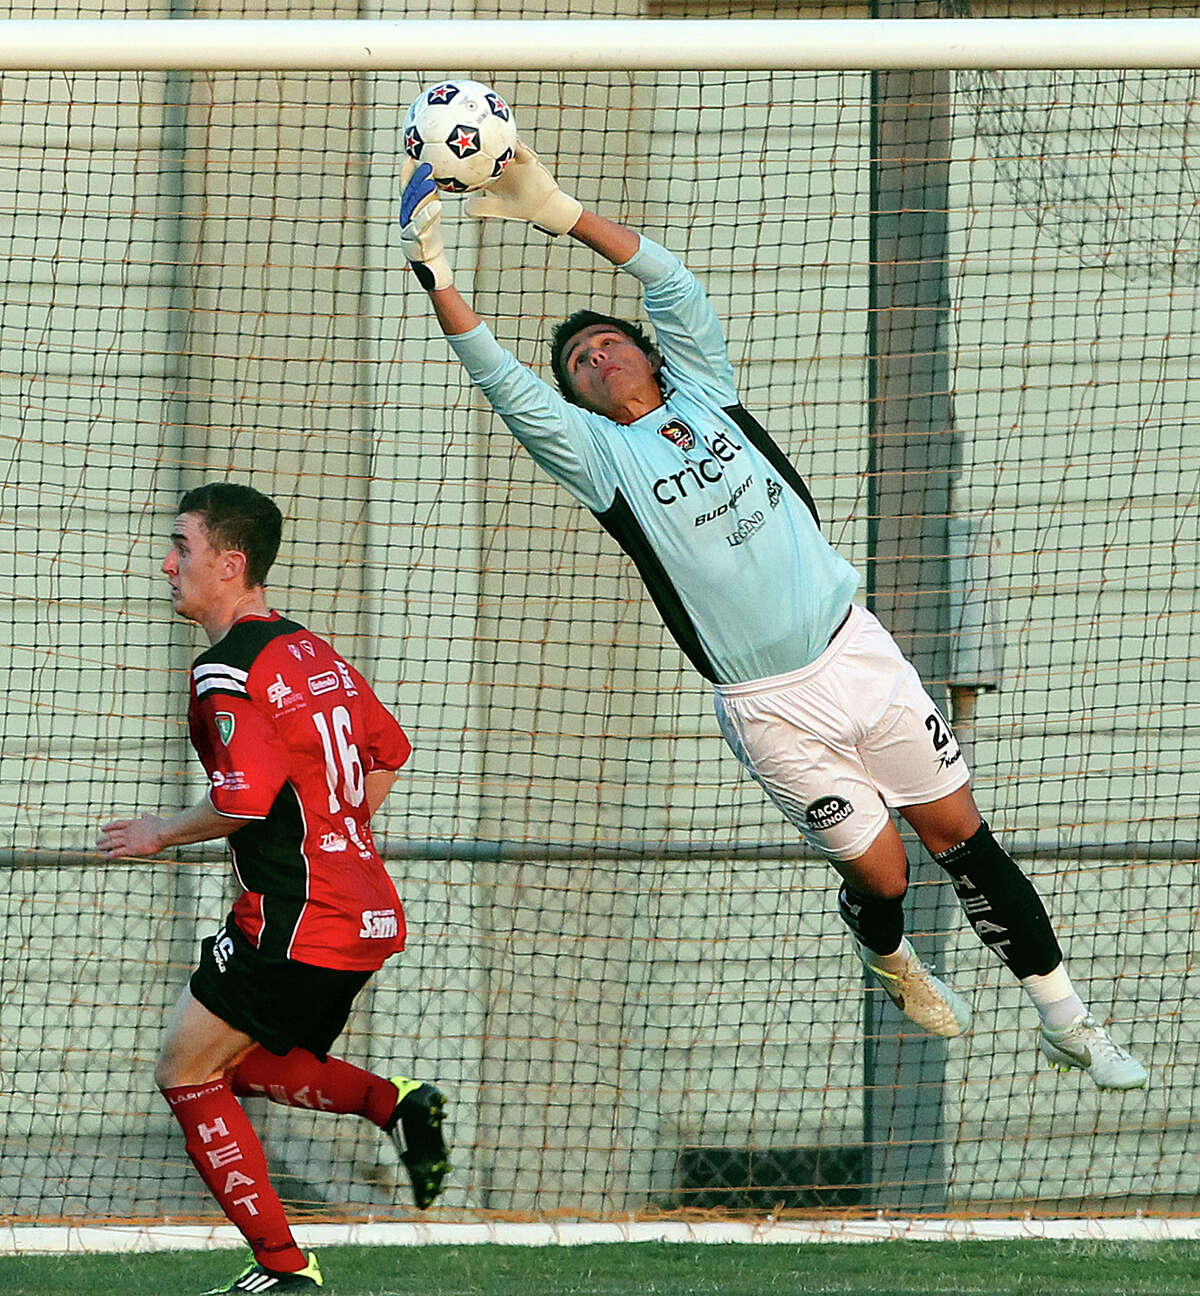 Laredo goalie Ernest Serrato pulls down a shot with teammate Aaron Pitchkolan moving underneath as the San Antonio Scorpions play the Laredo Heat in a U.S. Open Cup game at Blossom Soccer Stadium on May 22, 2012.